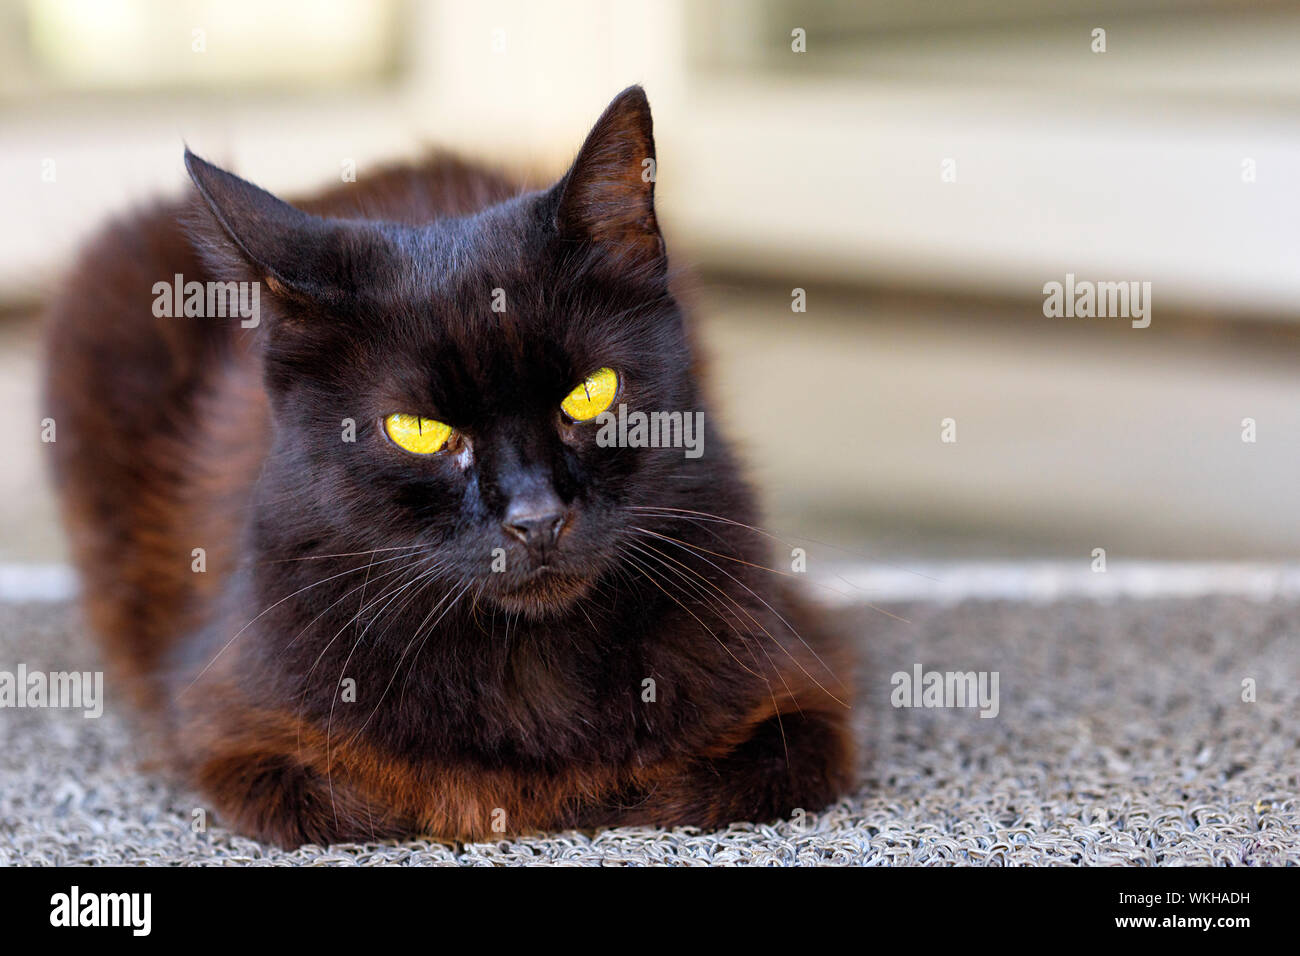 The bright yellow cat eyes of a beautiful dark brown cat with a blue tint of fur are carefully looking straight ahead, cat, black, portrait. Stock Photo